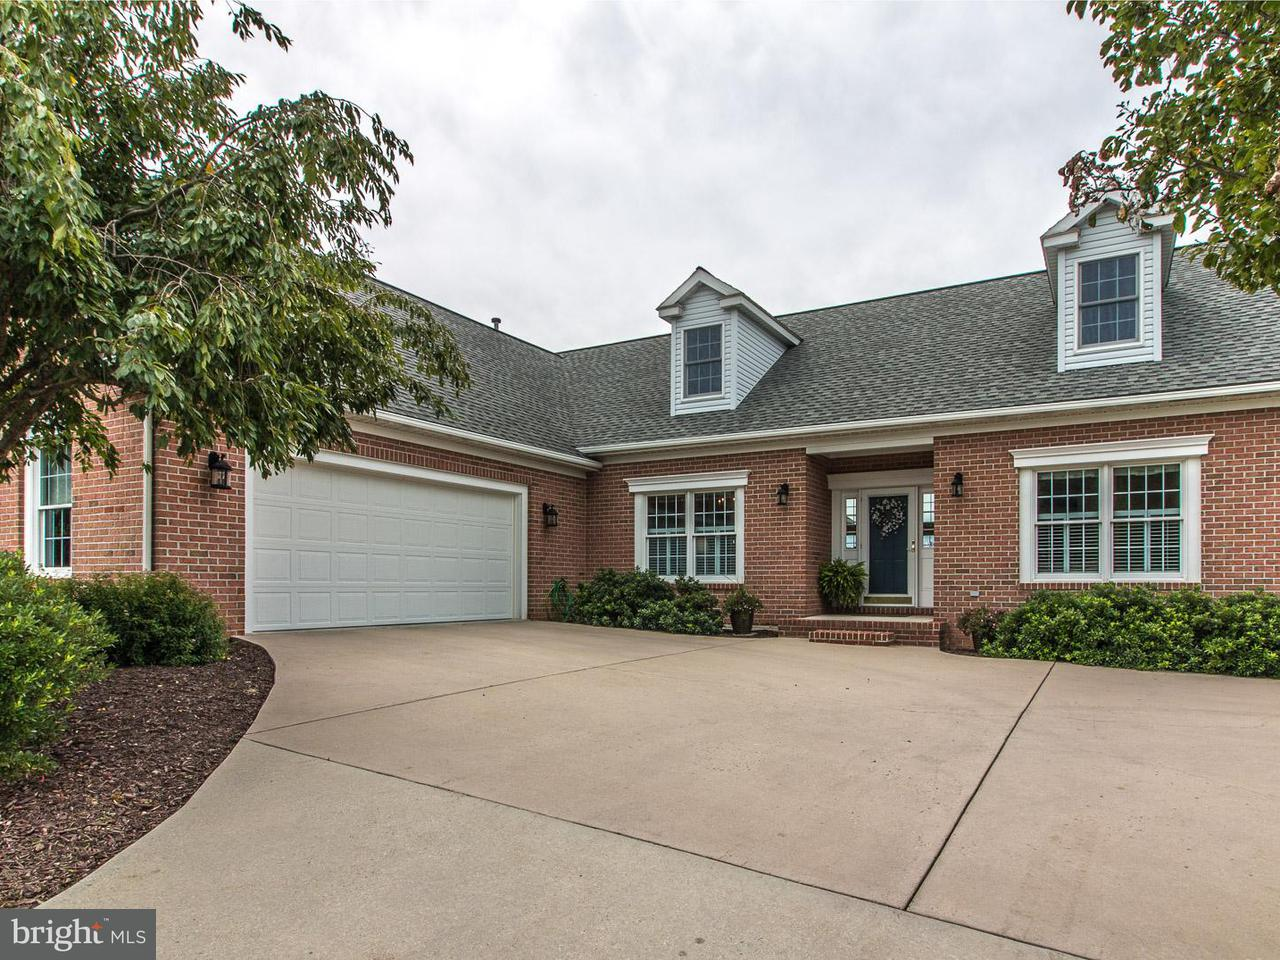 Additional photo for property listing at 6902 St Annes 6902 St Annes Fayetteville, Pennsylvania 17222 Verenigde Staten